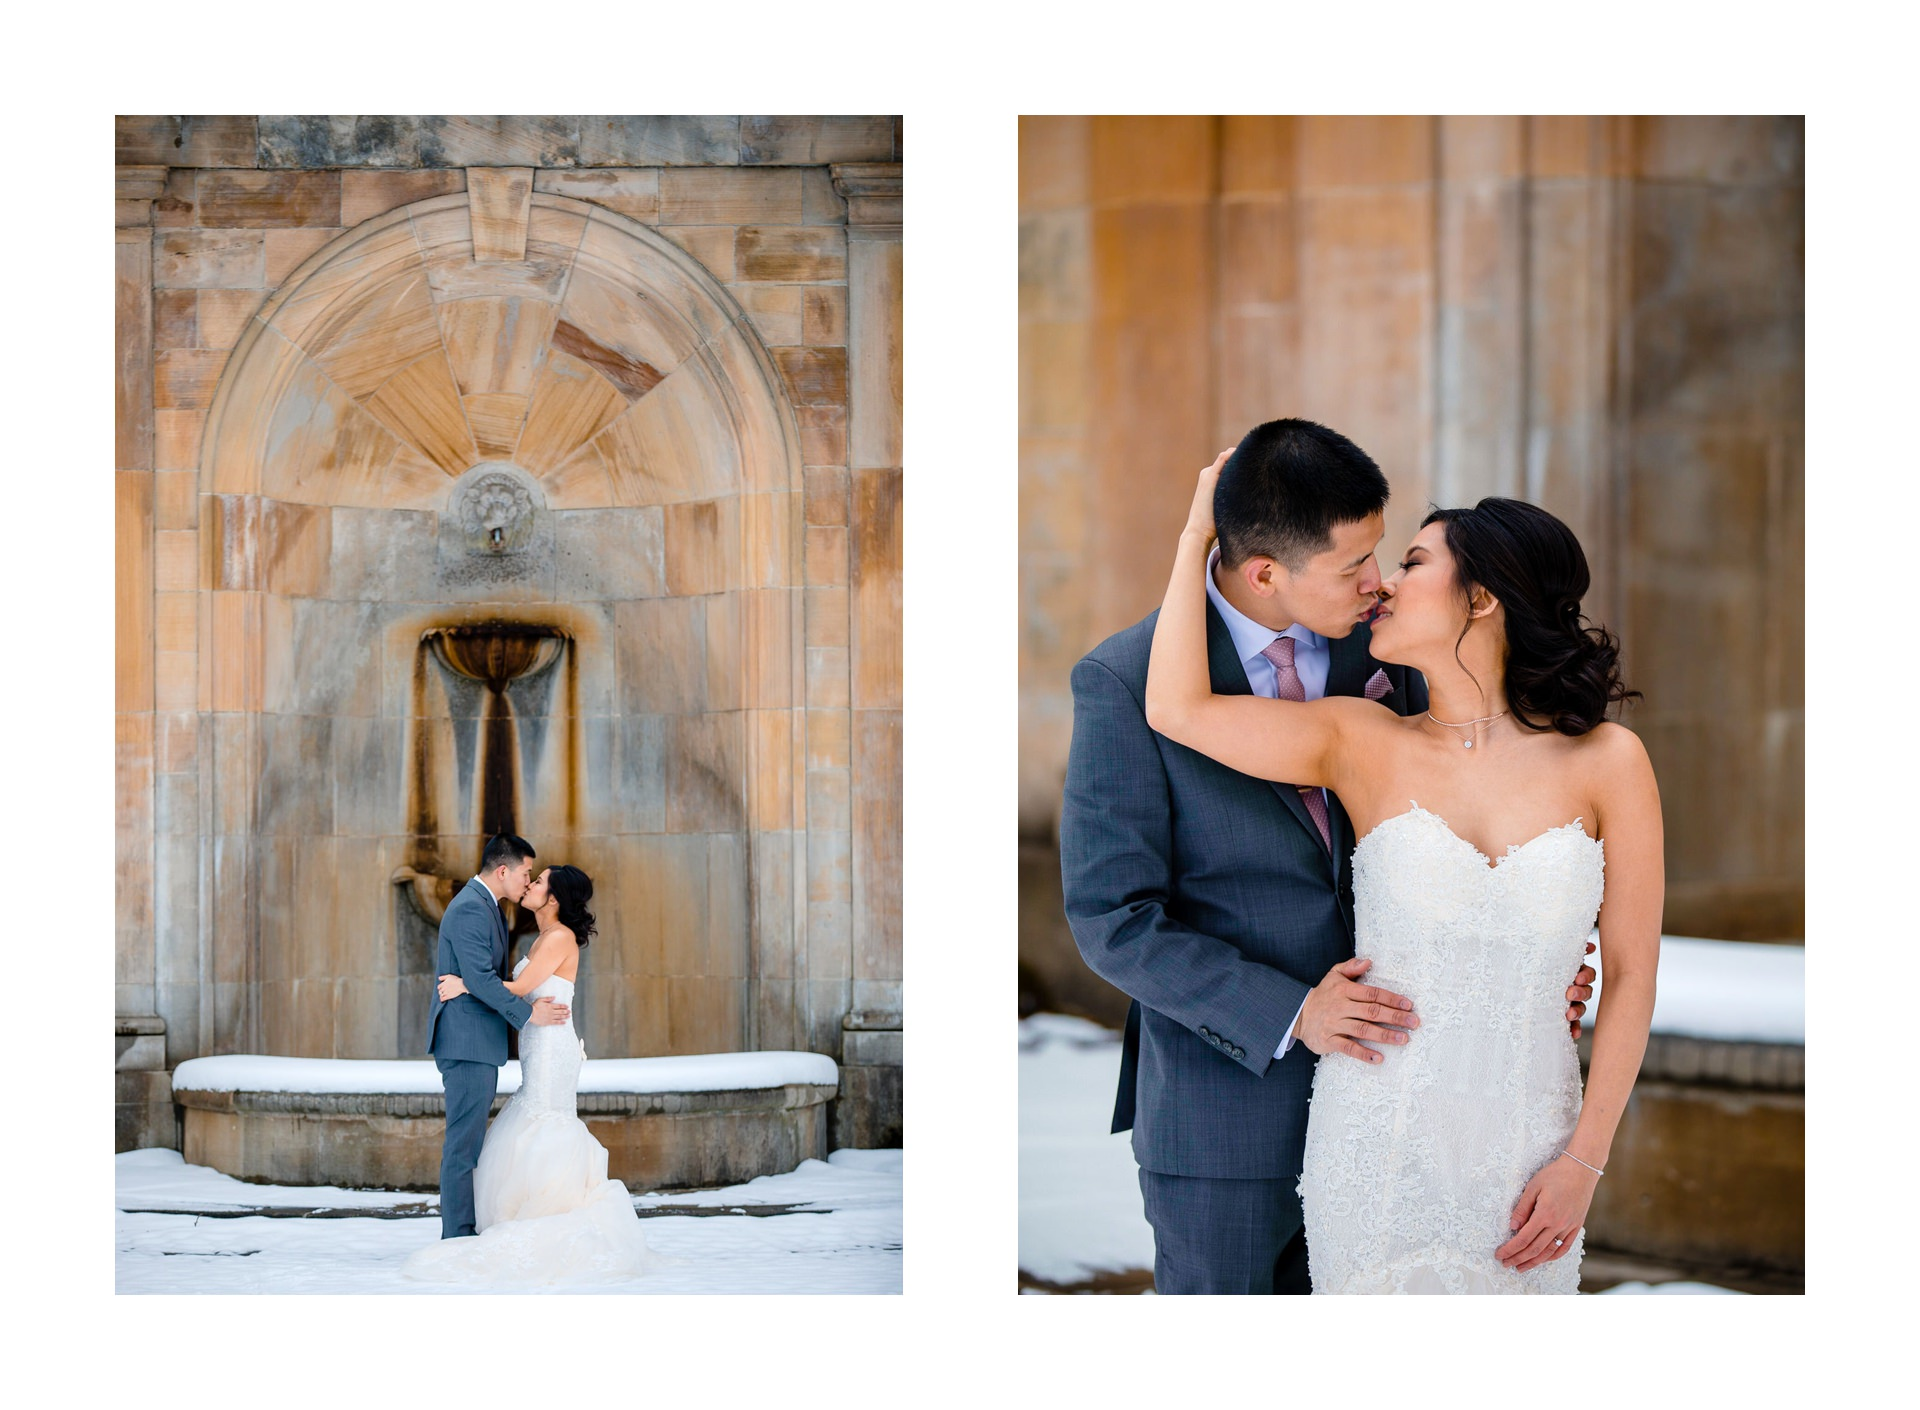 Windows on the River Winter Wedding Photographer in Cleveland 52.jpg